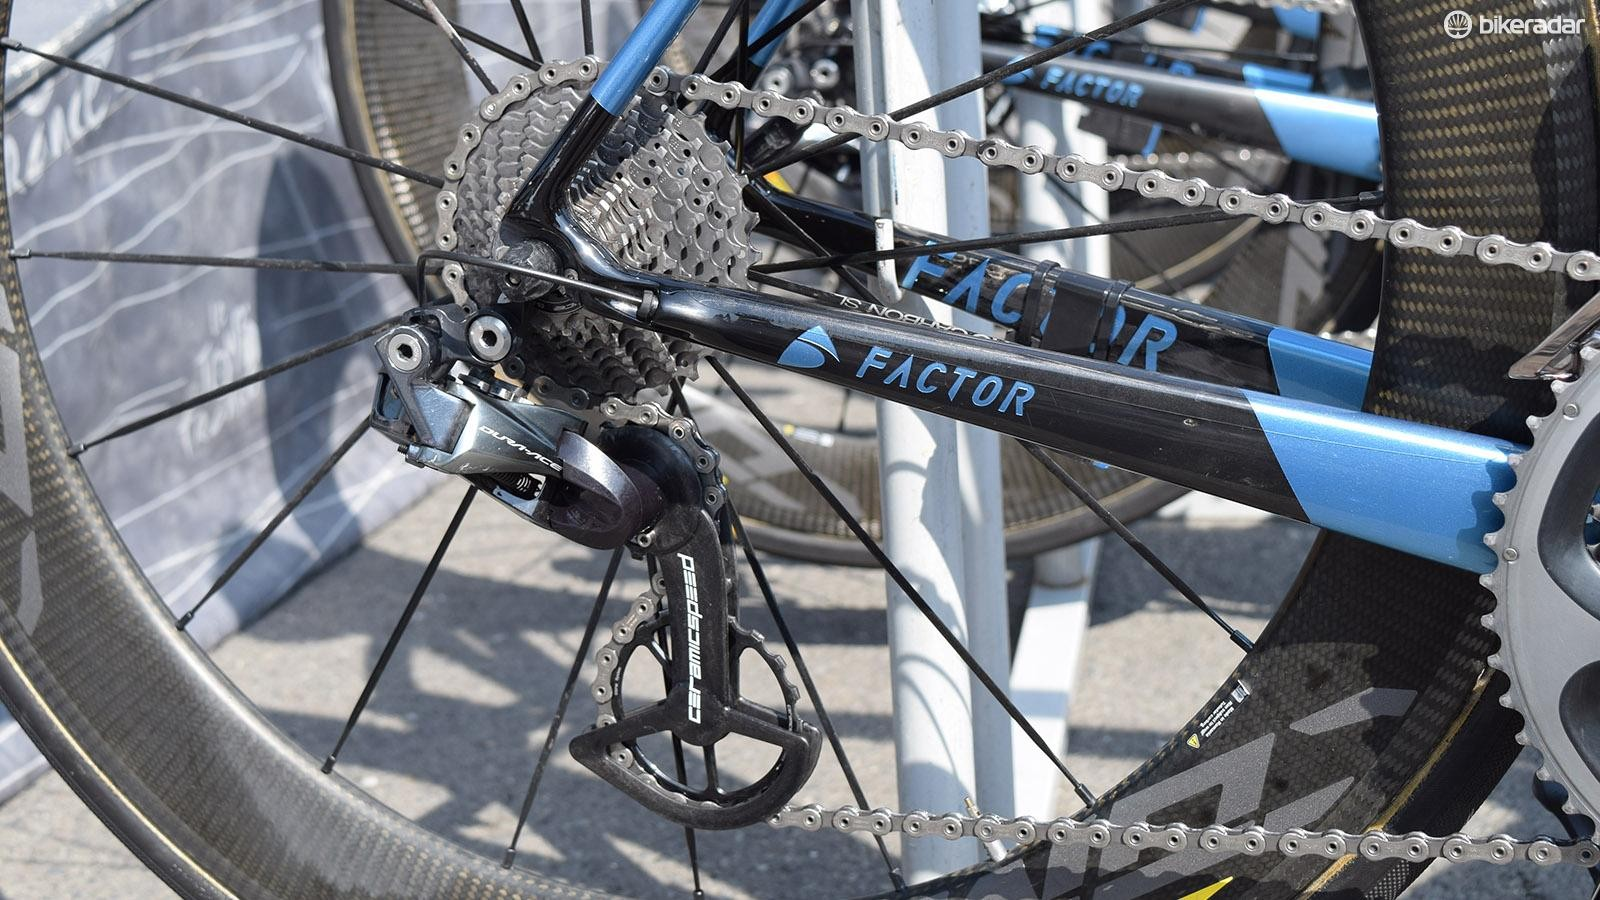 AG2R La Mondiale run CeramicSpeed's OSPW system on all of its rear derailleurs